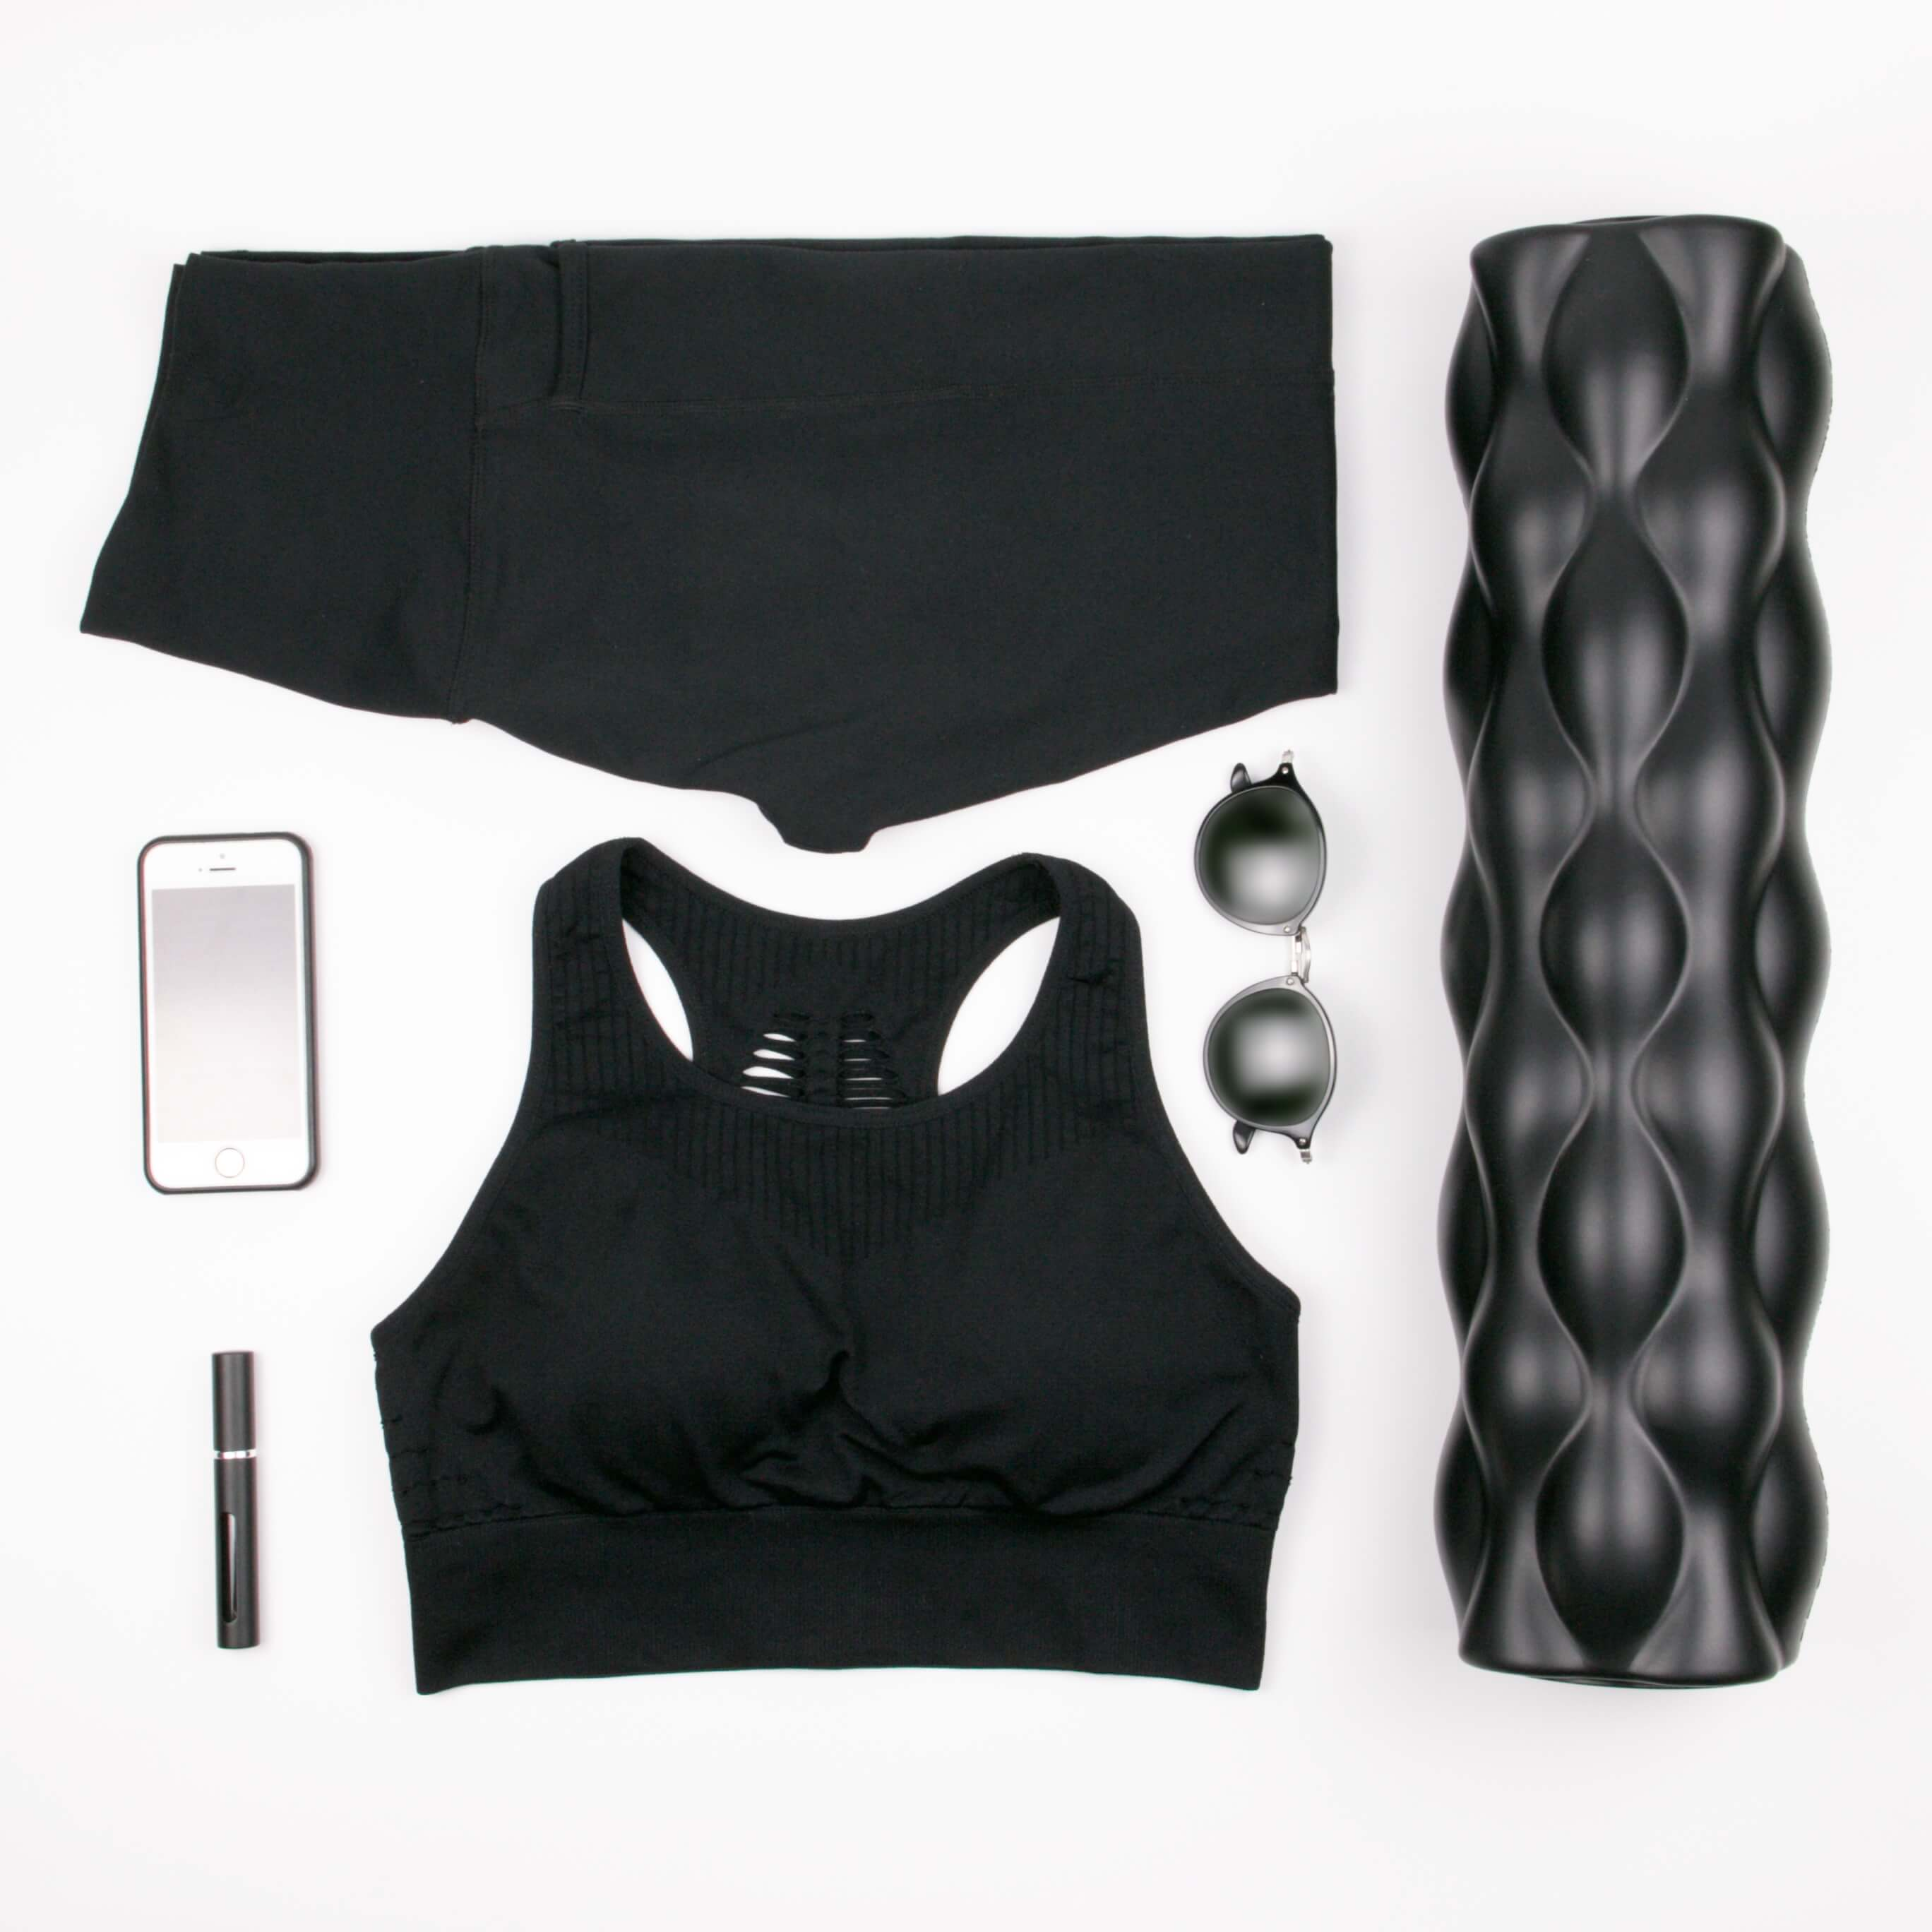 Gym clothes, foam roller, portable refillable atomizer all in black flat lay - Staying in Shape on Beach Vacation with these Must-Have Minimalist Fitness Items | Hummingbird